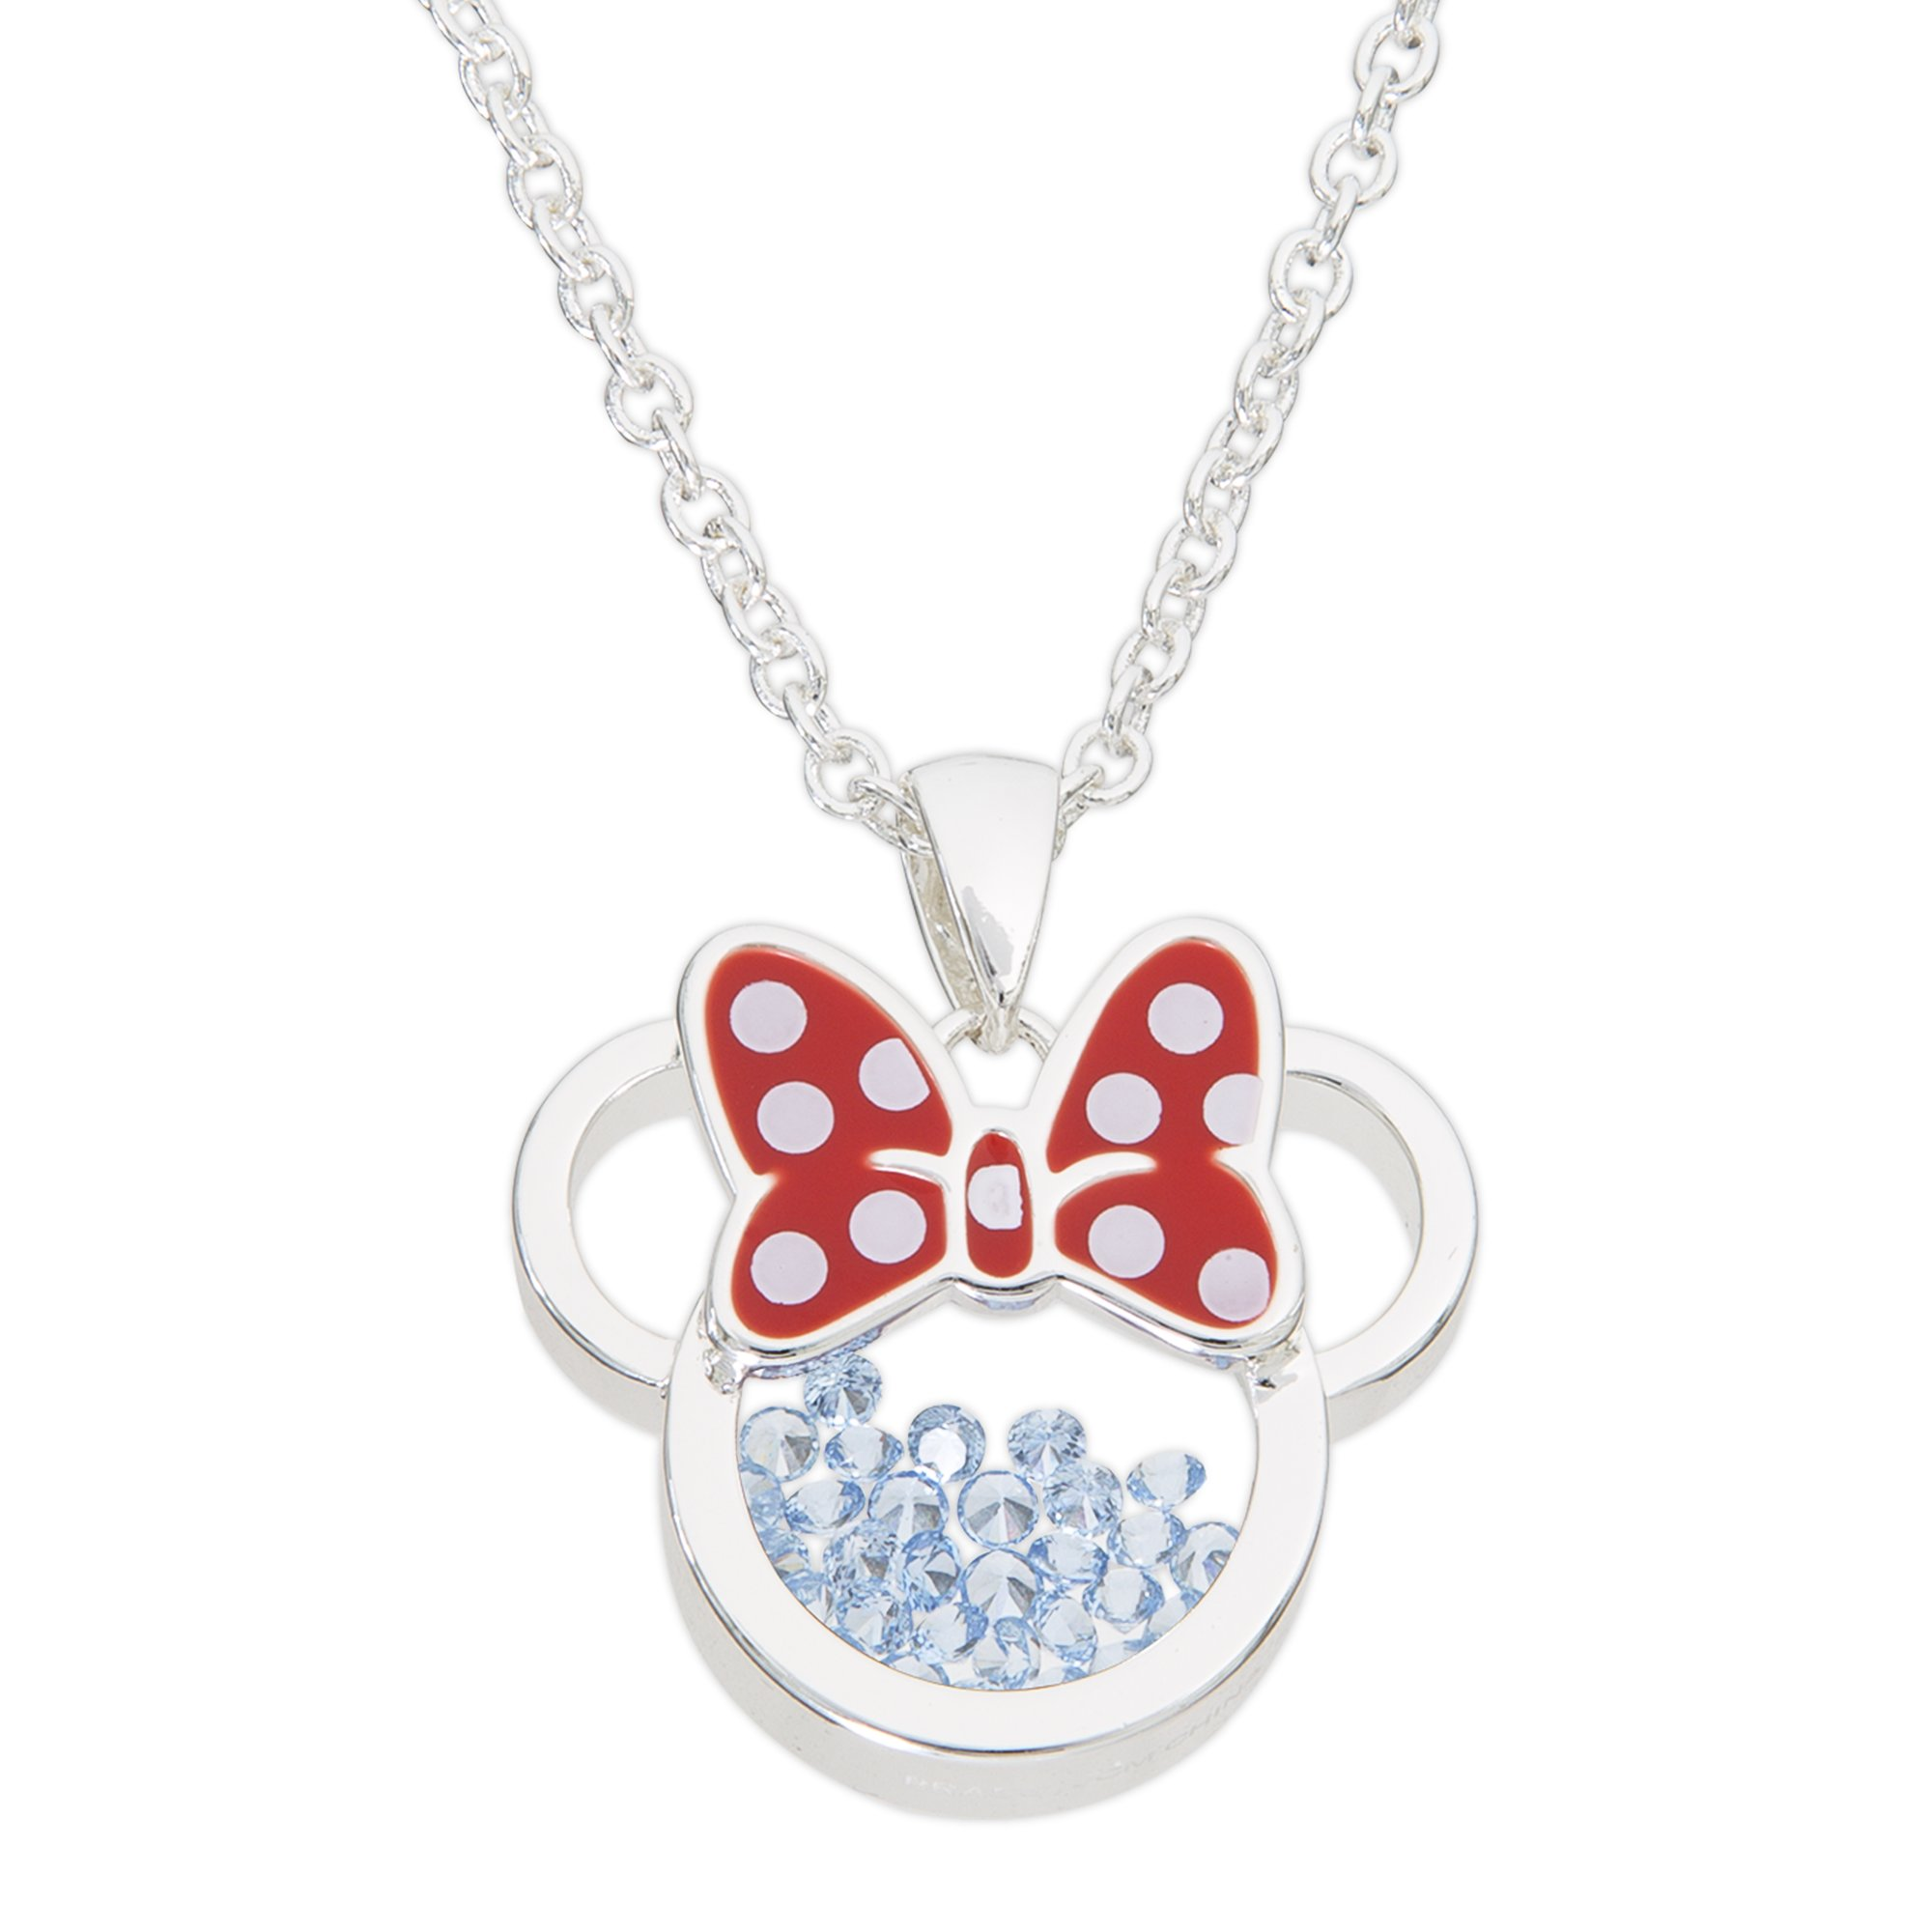 Disney Birthstone Women and Girls Jewelry Minnie Mouse Silver Plated December Light Sapphire Blue Shaker Pendant Necklace, 18+2'' Extender Mickey's 90th Birthday Anniversary